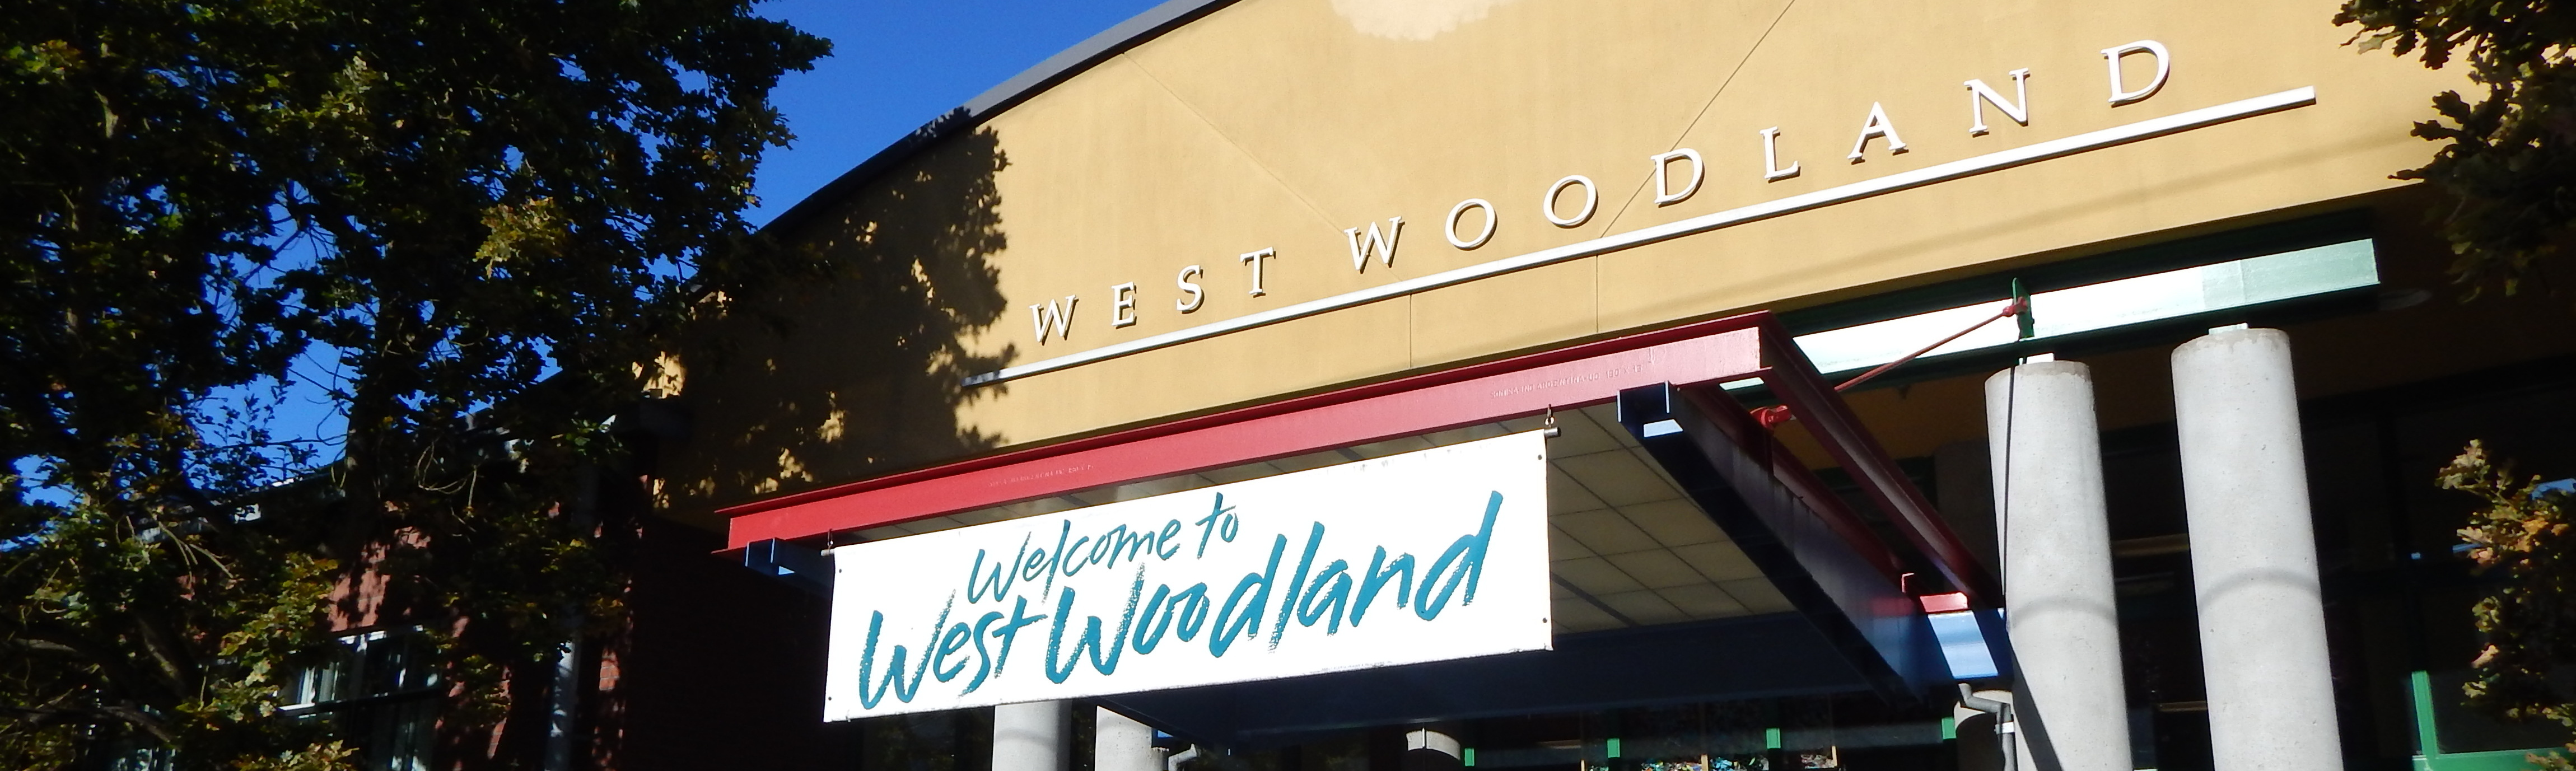 Second Chance For Parents To Tour West Woodland Elementary School